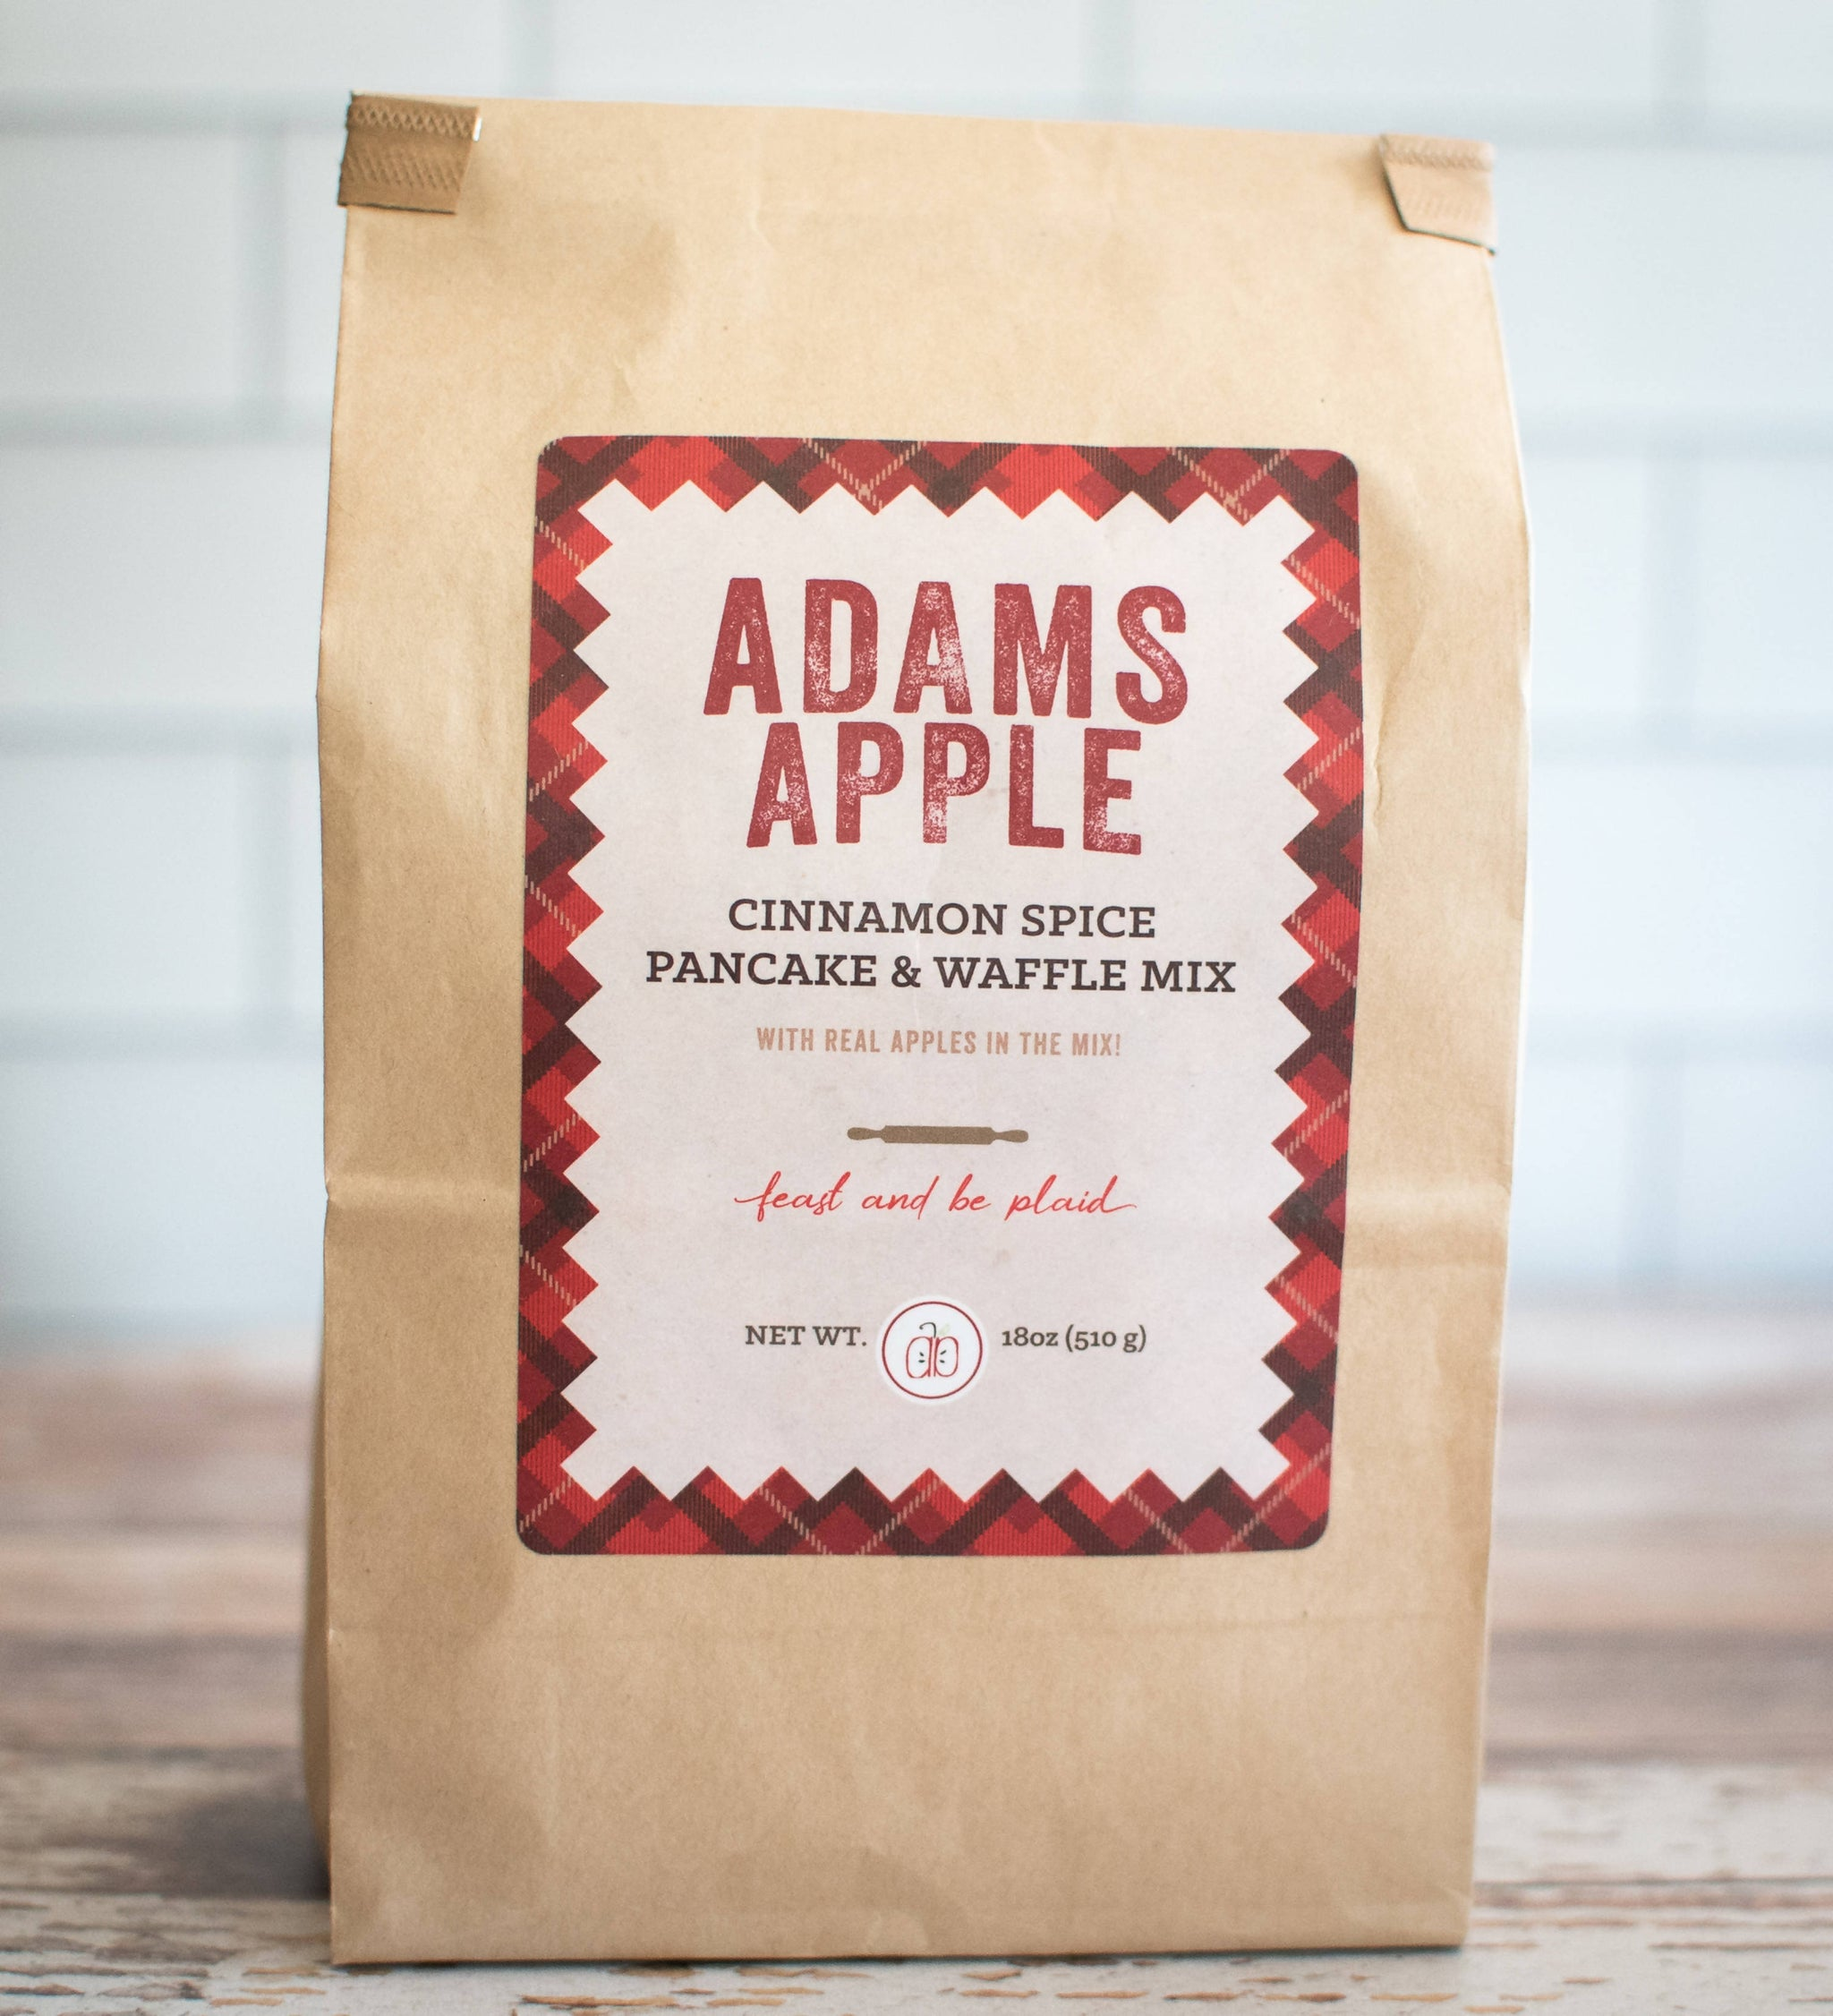 ADAMS APPLE CINNAMON SPICE PANCAKE AND WAFFLE MIX